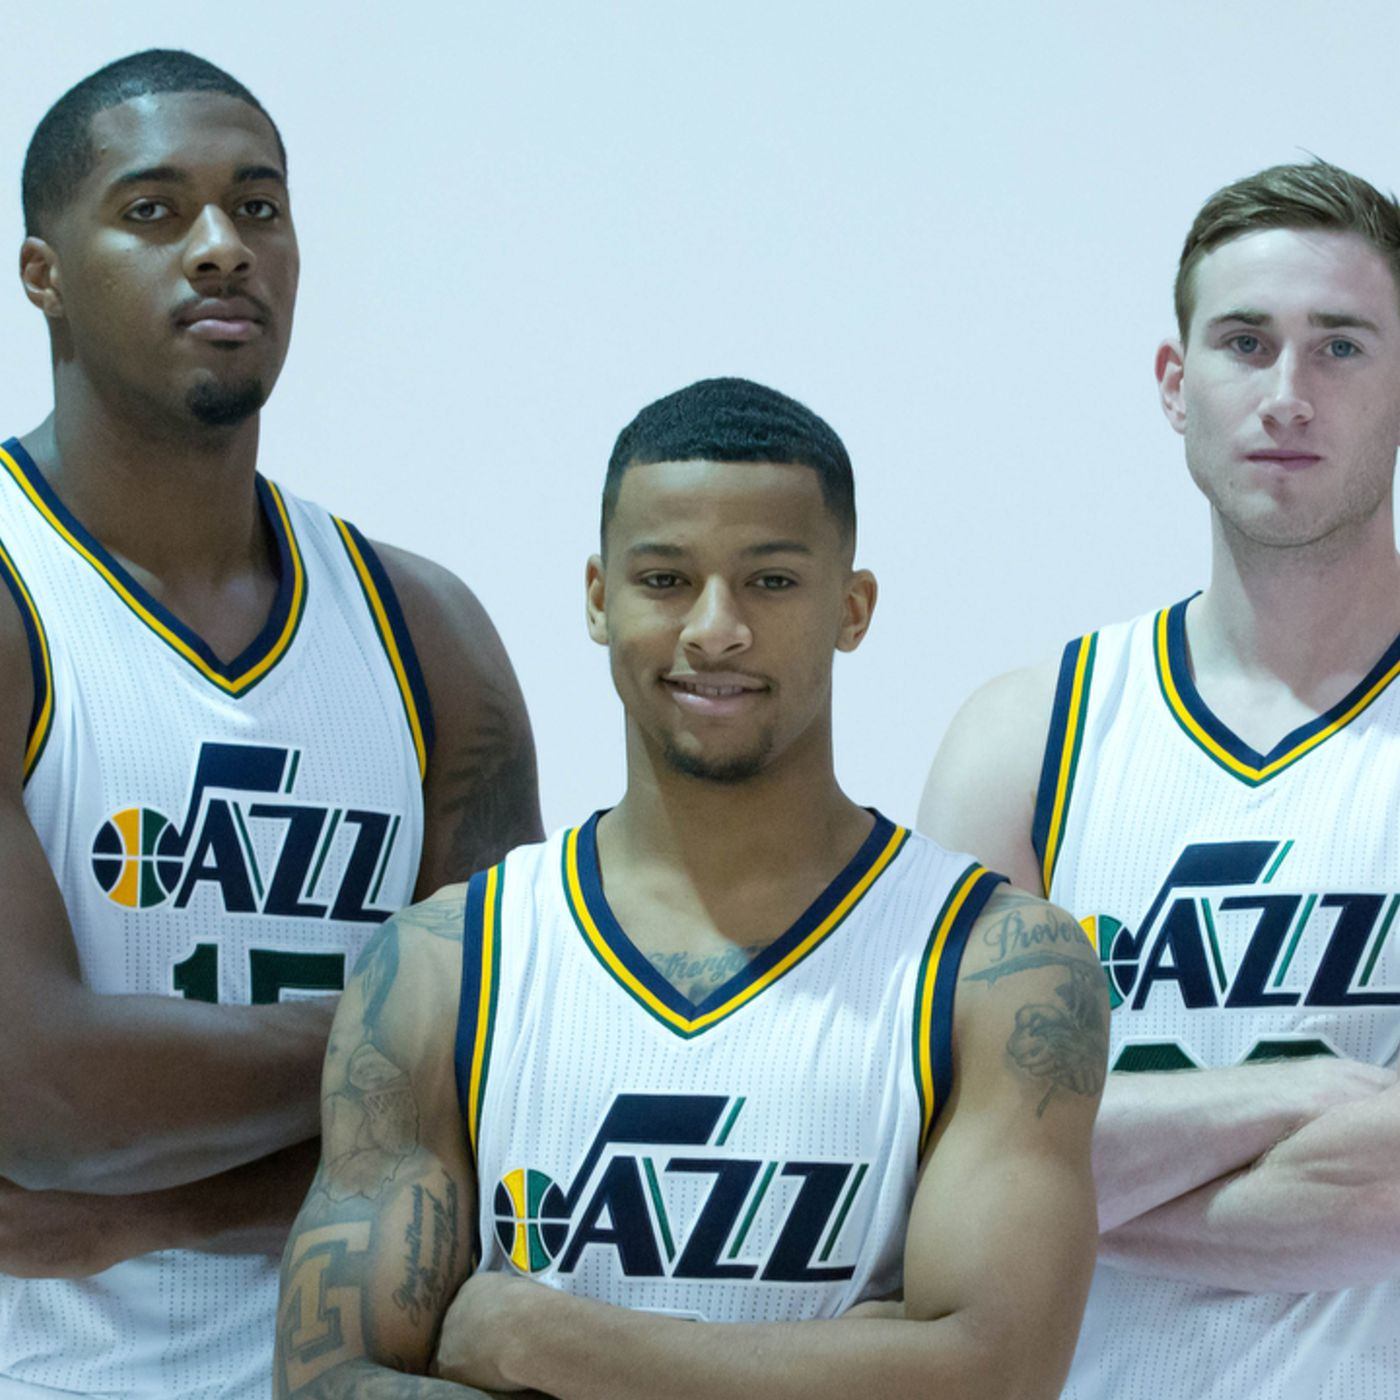 Utah Jazz Roster 2014 2015 Gordon Hayward Derrick Favors Trey Burke To Lead Exciting Young Team Slc Dunk